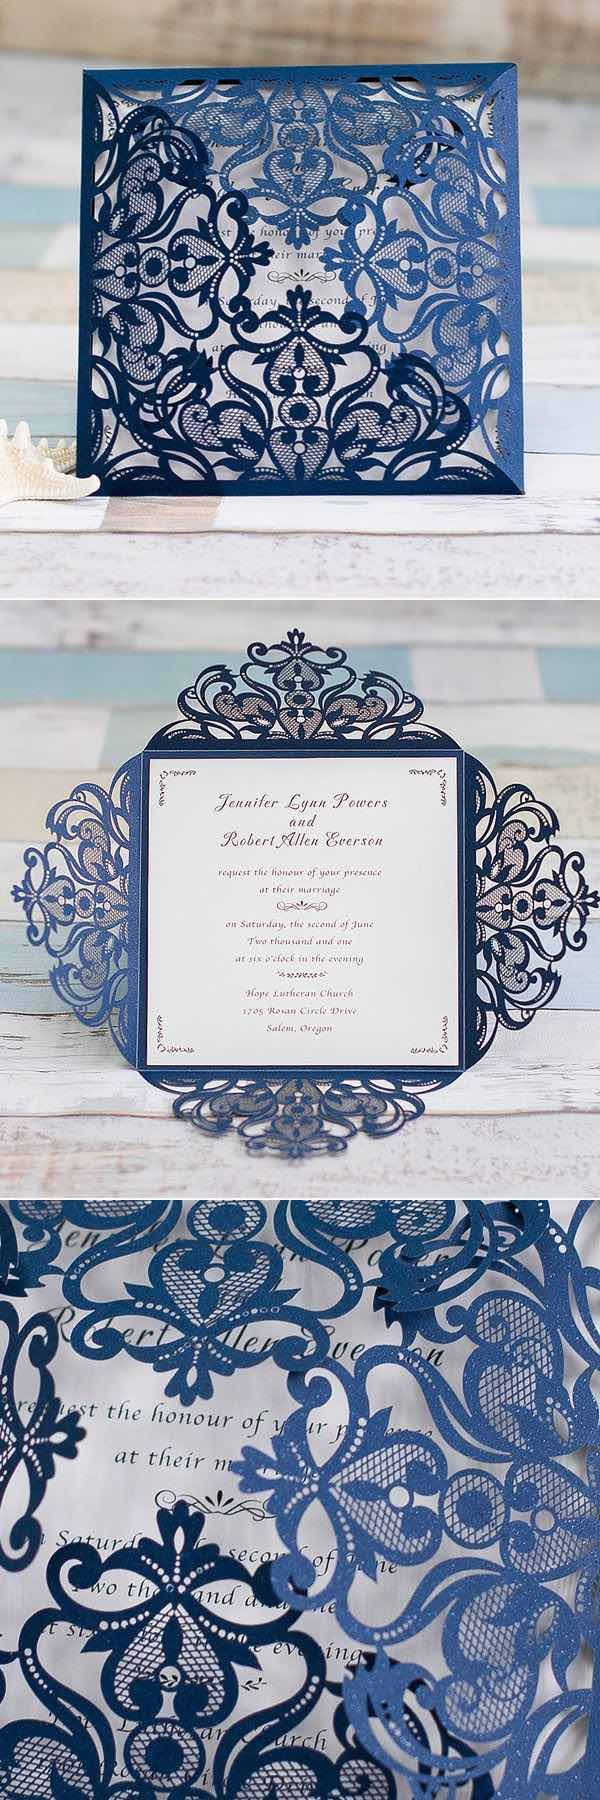 Featured Invitation: Elegant Wedding Invites; Elegant classic blue laser cut wedding invitation idea